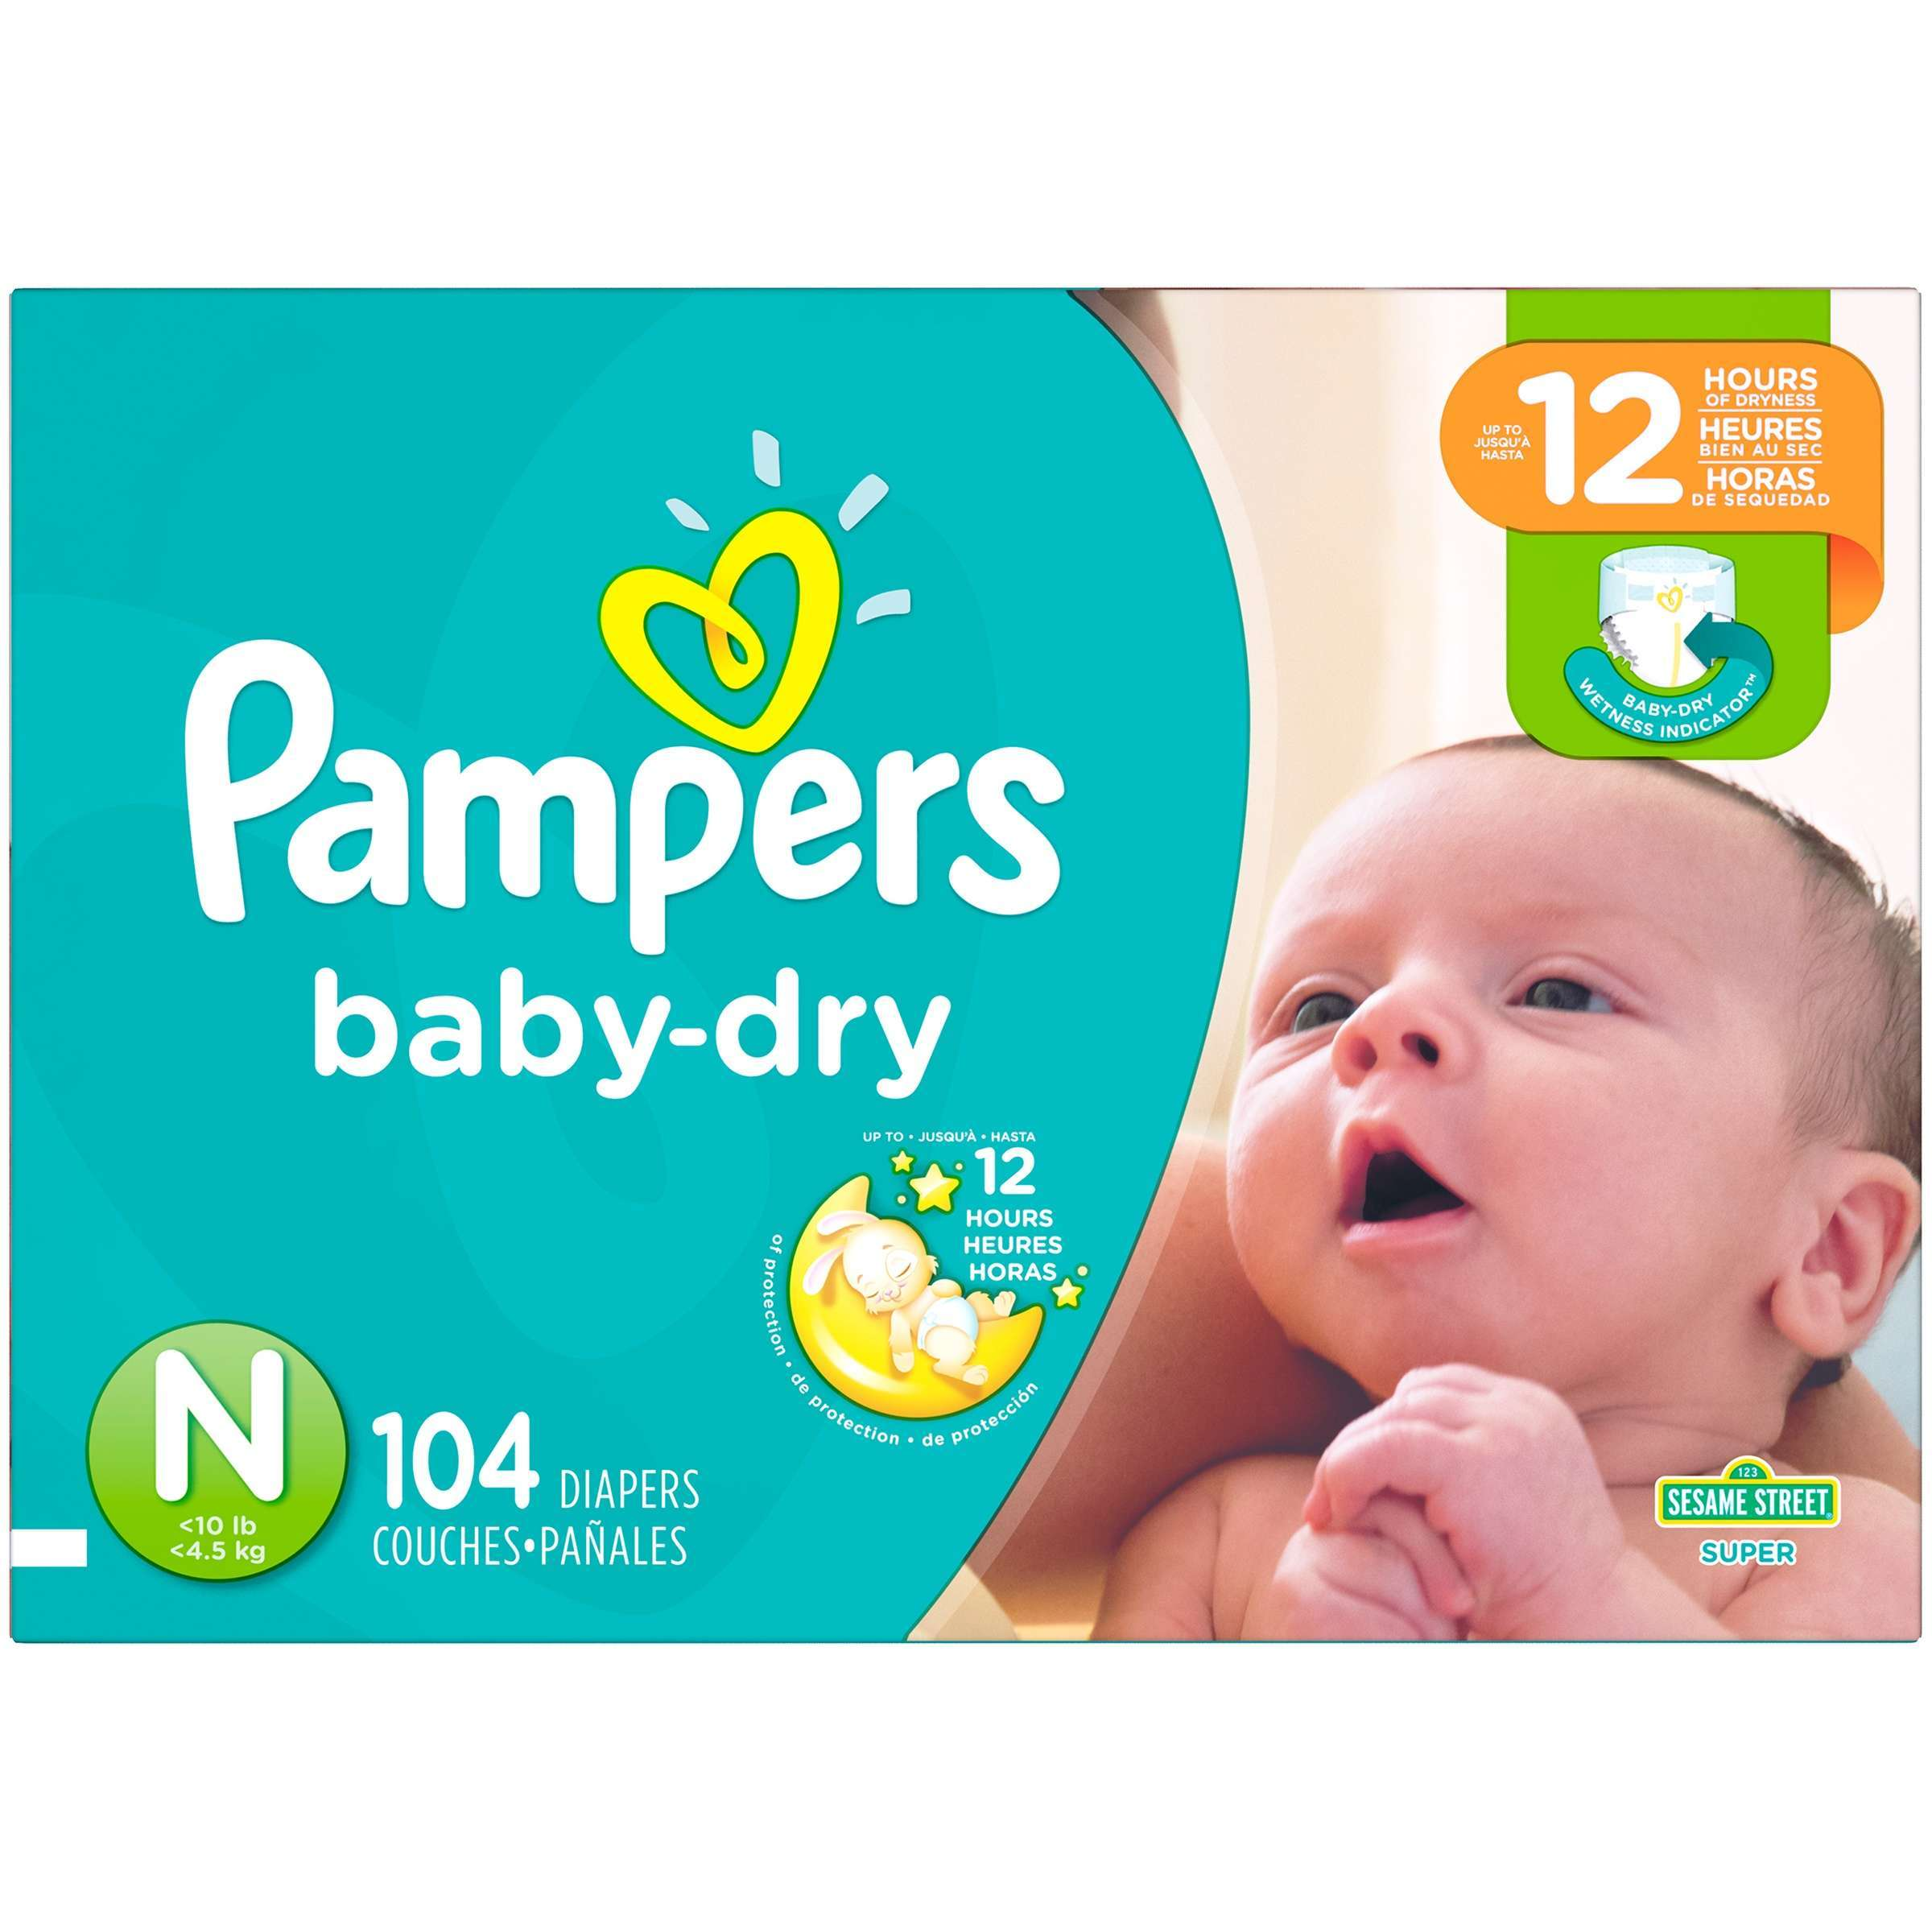 Pampers Baby Dry Diapers, Size Newborn, 104 Diapers